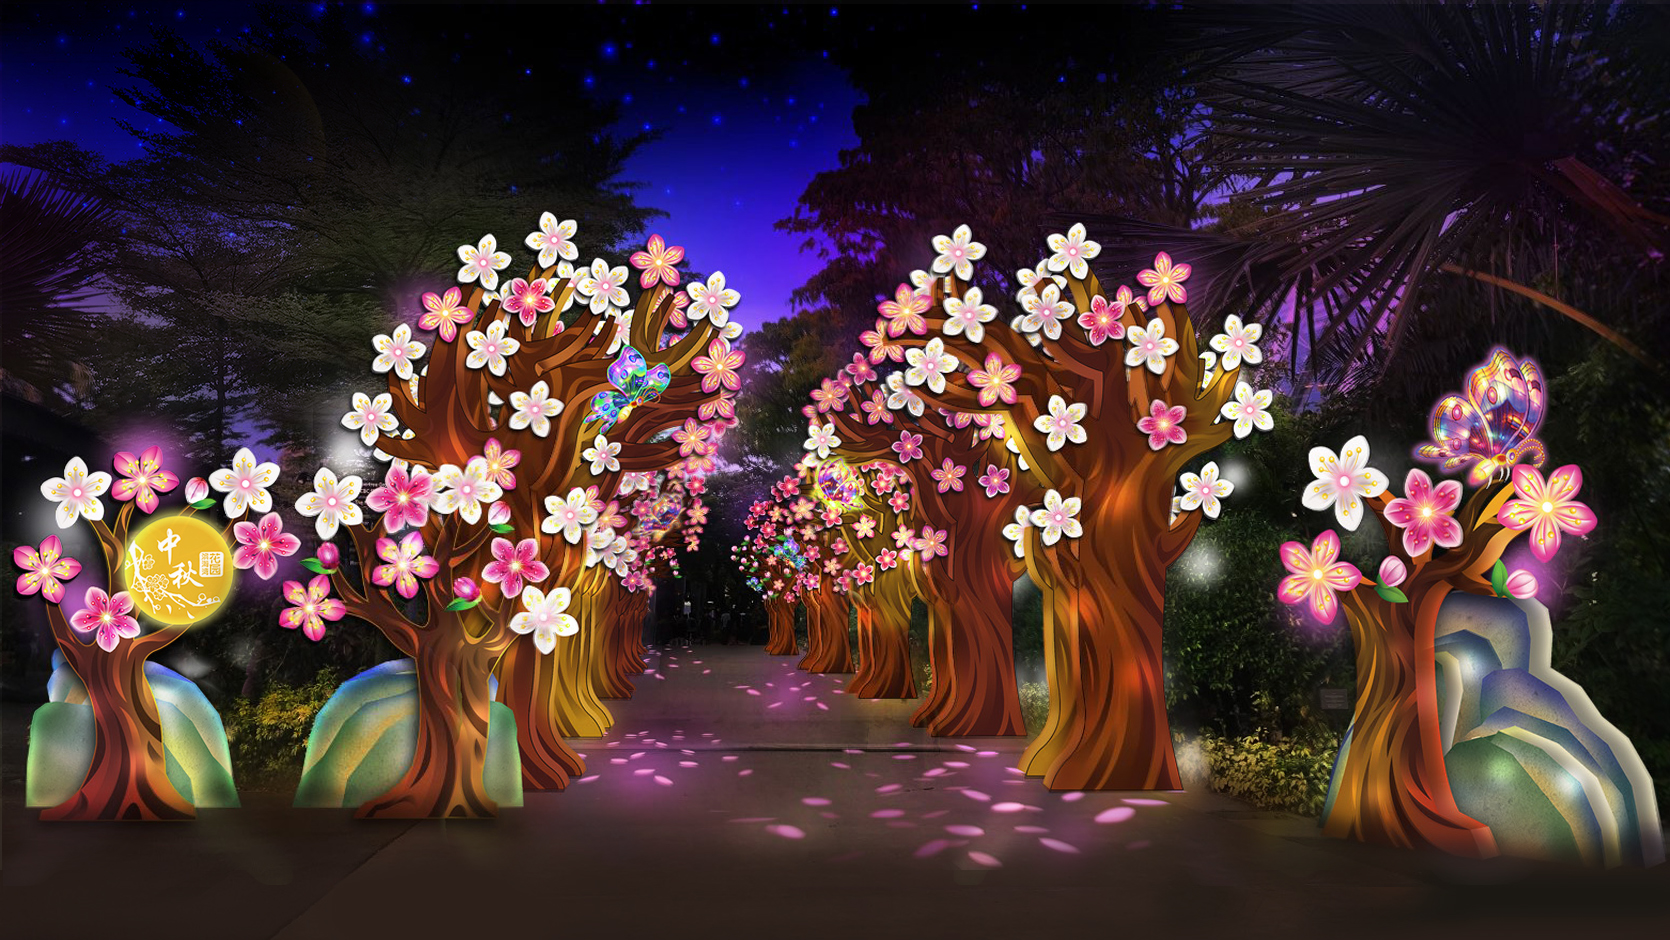 Virtual previews of mid-autumn lanterns & online performances at Gardens by the Bay from Sep. 18 to Oct. 4